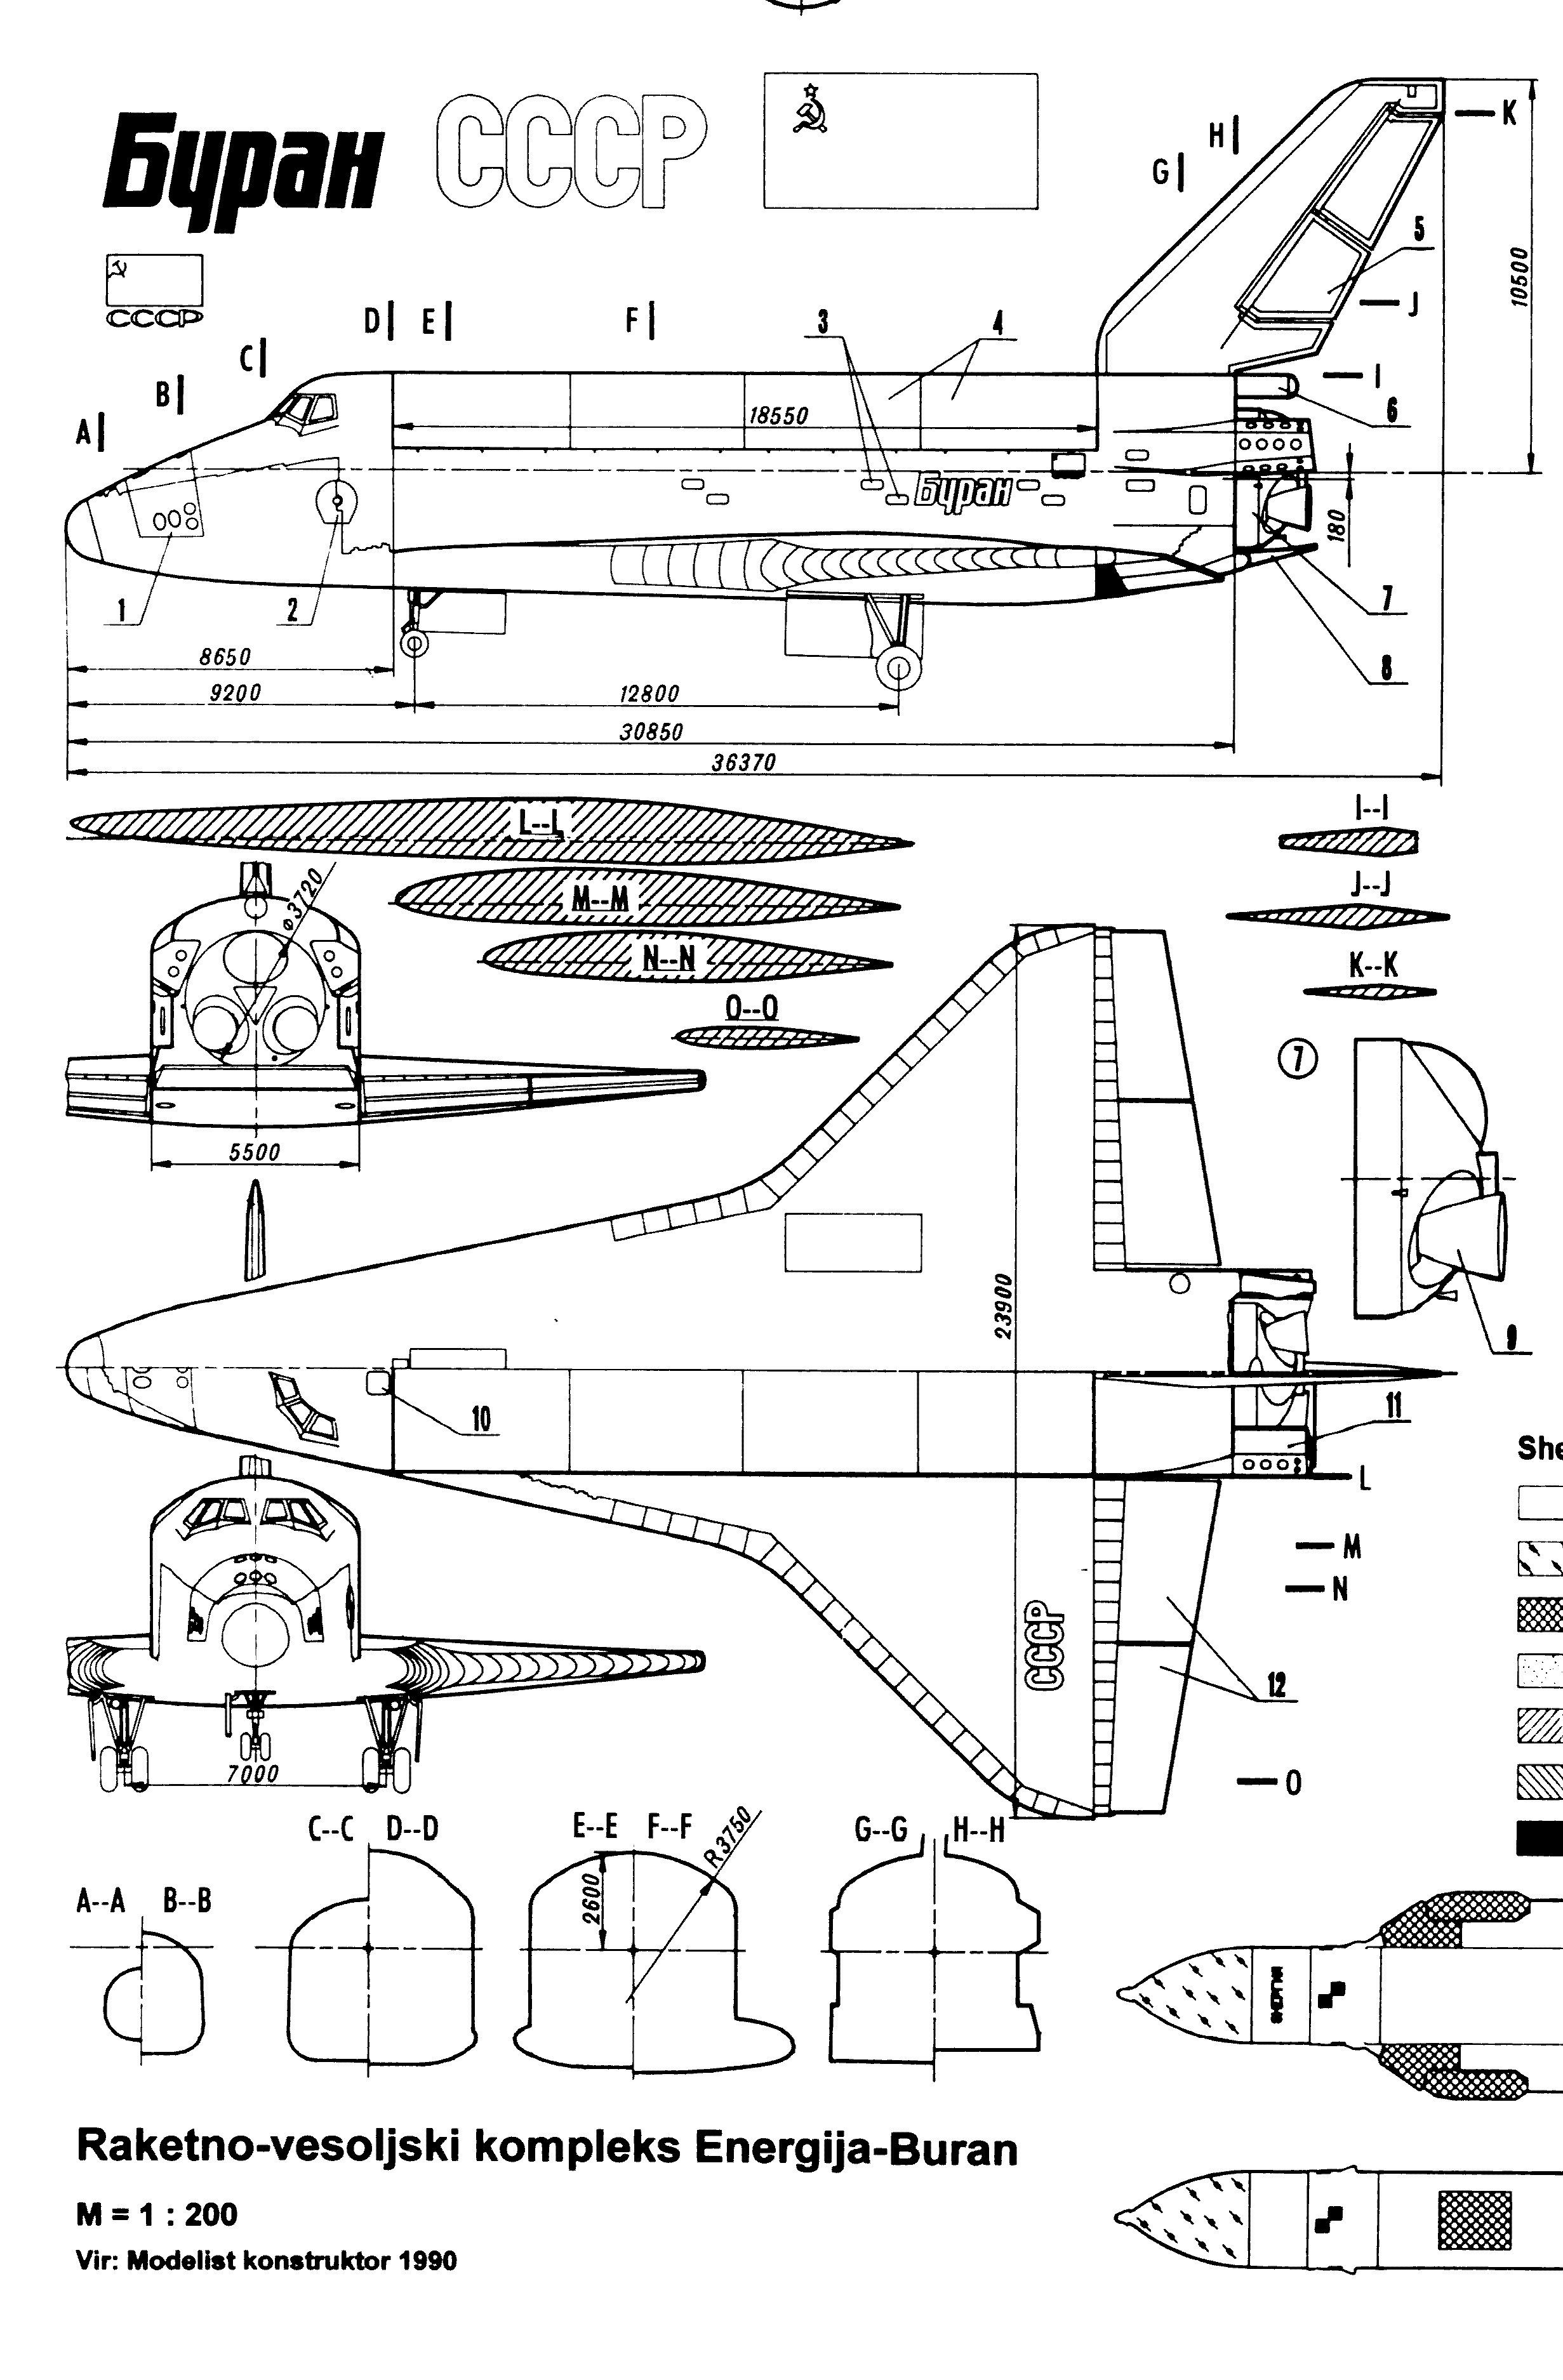 medium resolution of click for view big size 2462x3750 drawing narrative new space space shuttle nose cone diagram page 2 pics about space